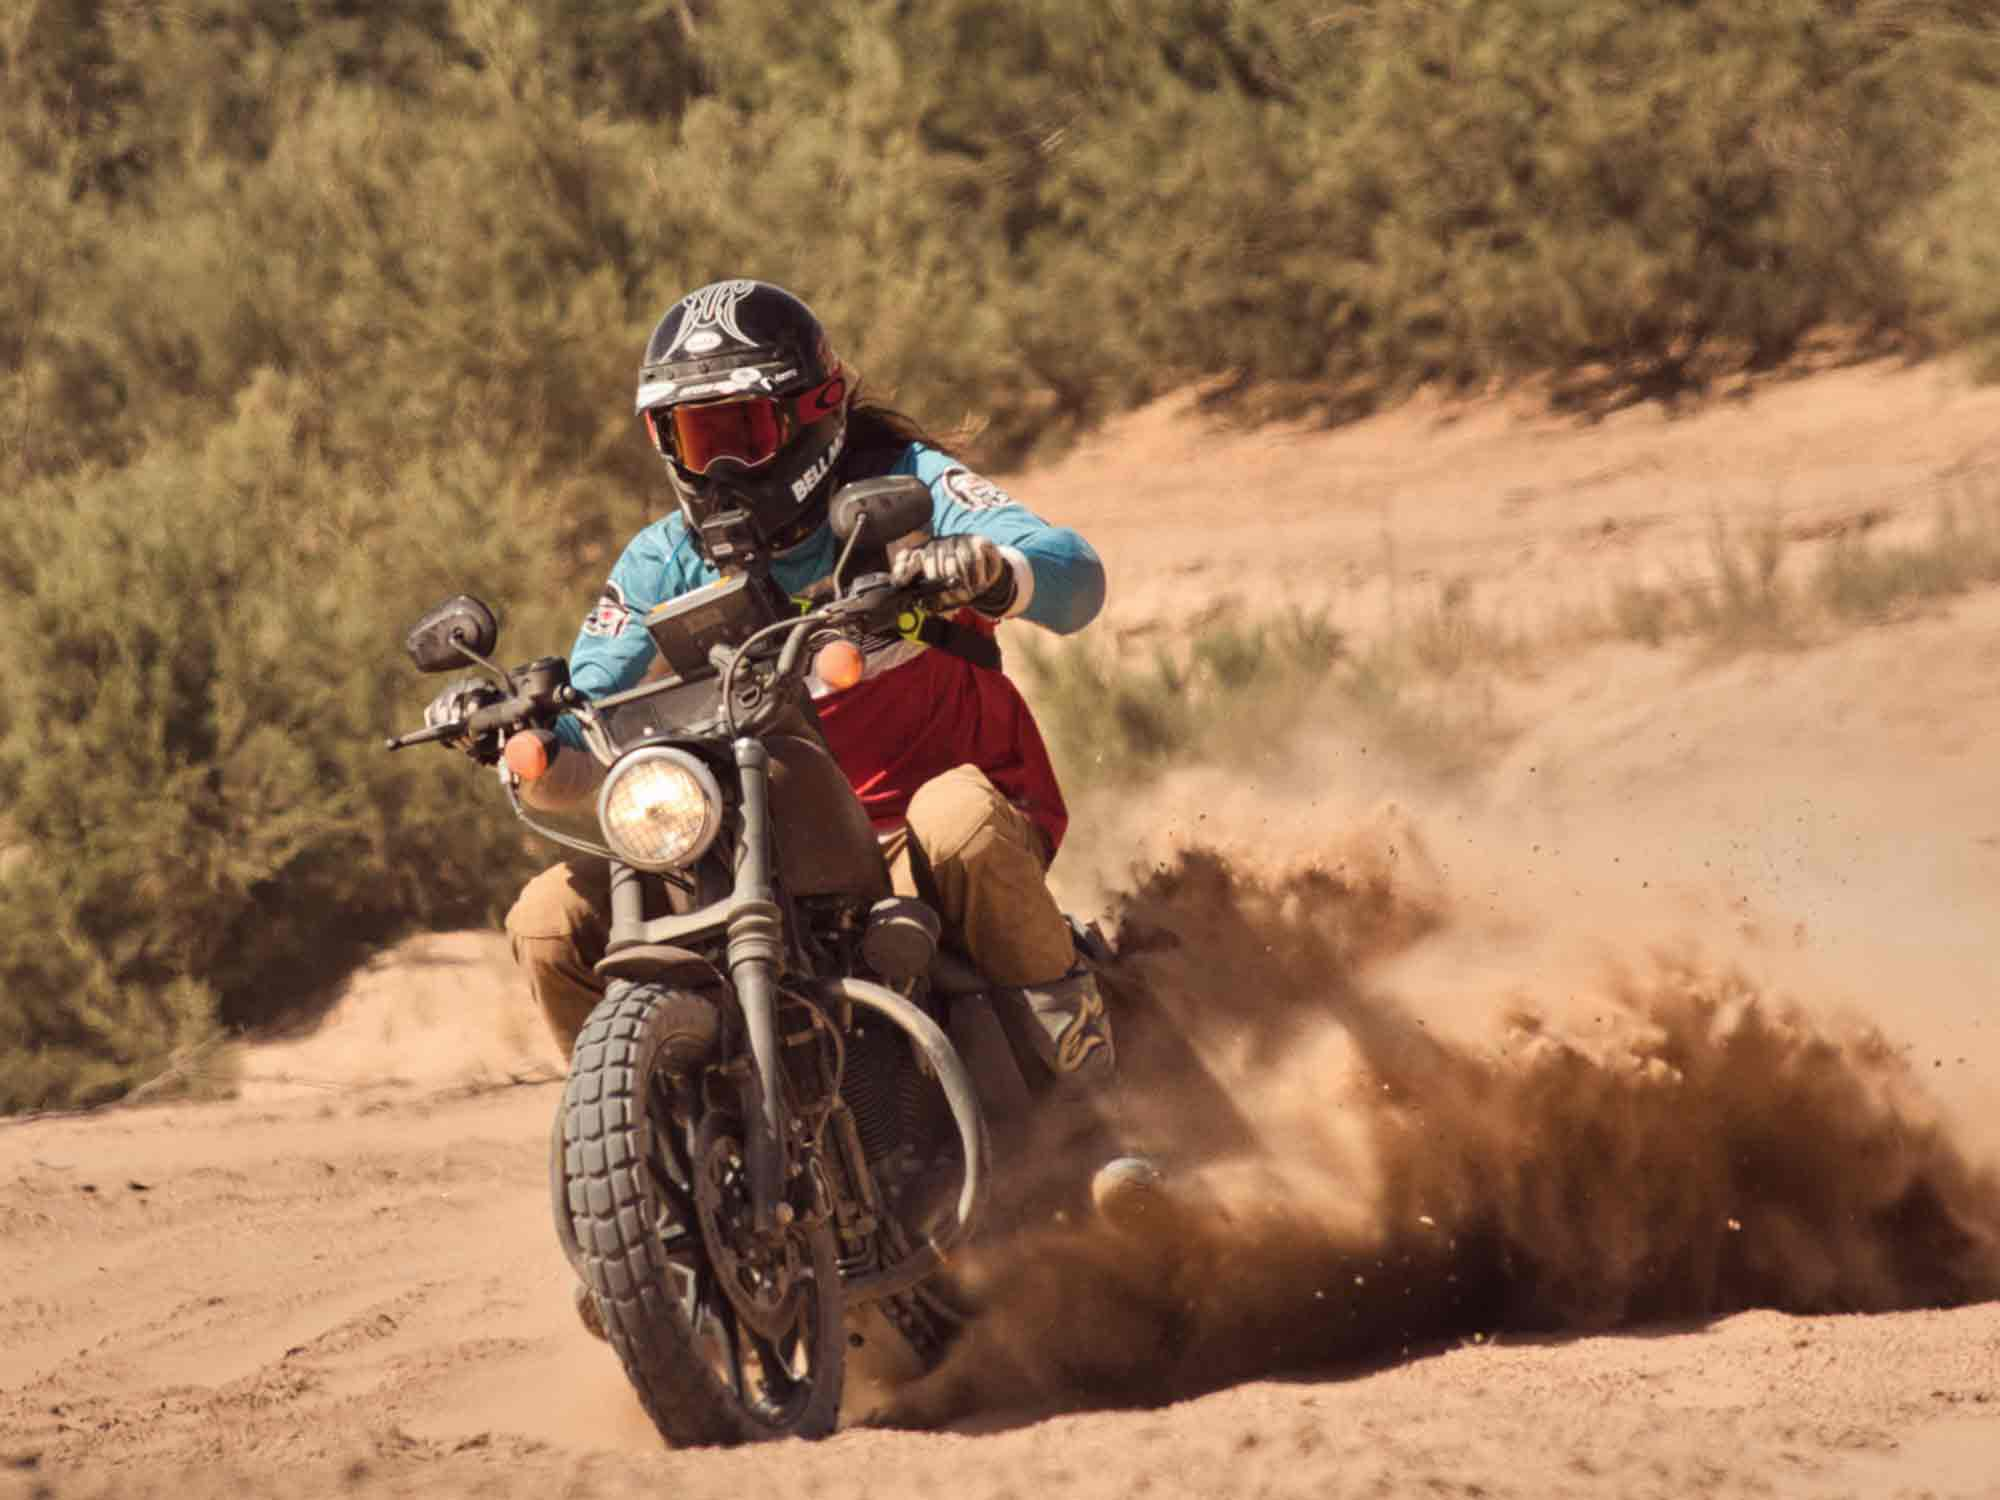 The back tire spitting out clouds of red sand, keeping the front tire barely above it. Pinned in third gear, I make it through the fesh-fesh.